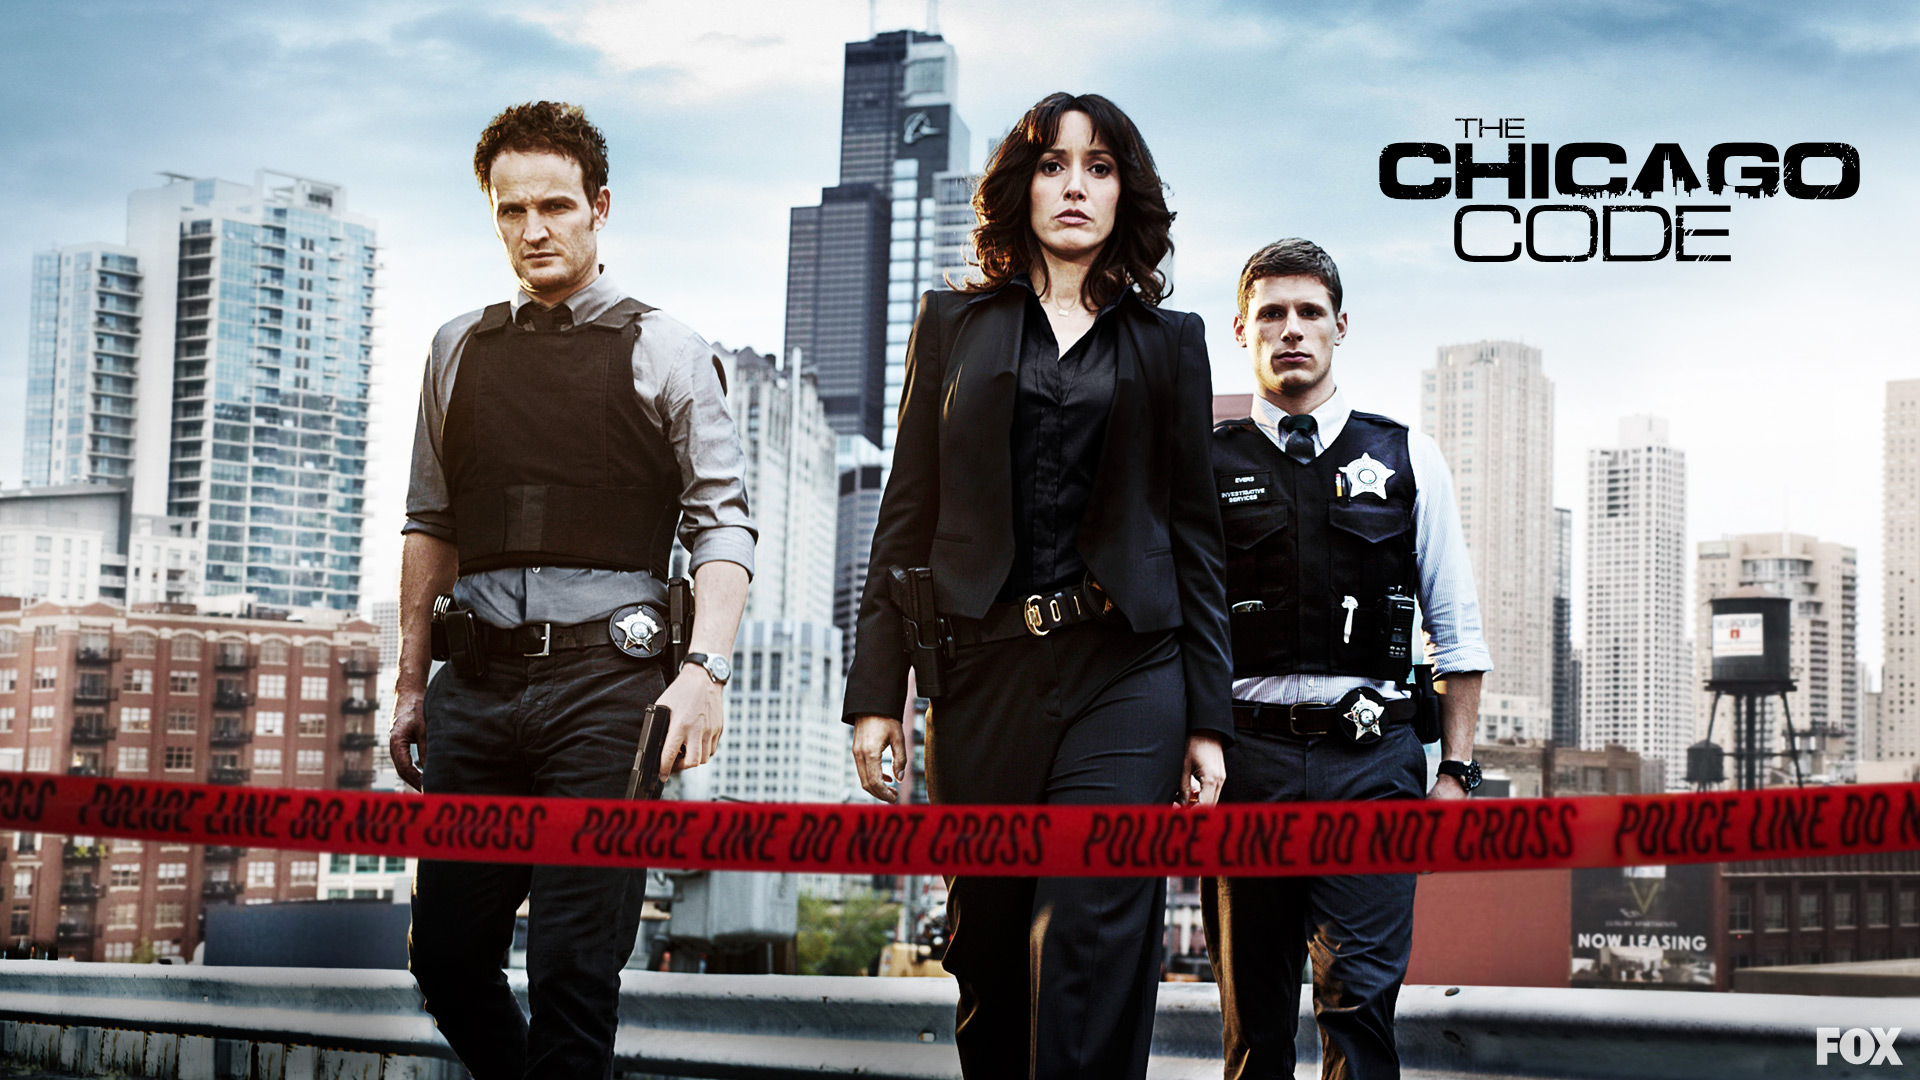 The distinctive new police drama THE CHICAGO CODE follows the Windy City's most powerful and respected cops as they navigate the city's underbelly to fight crime and expose corruption.